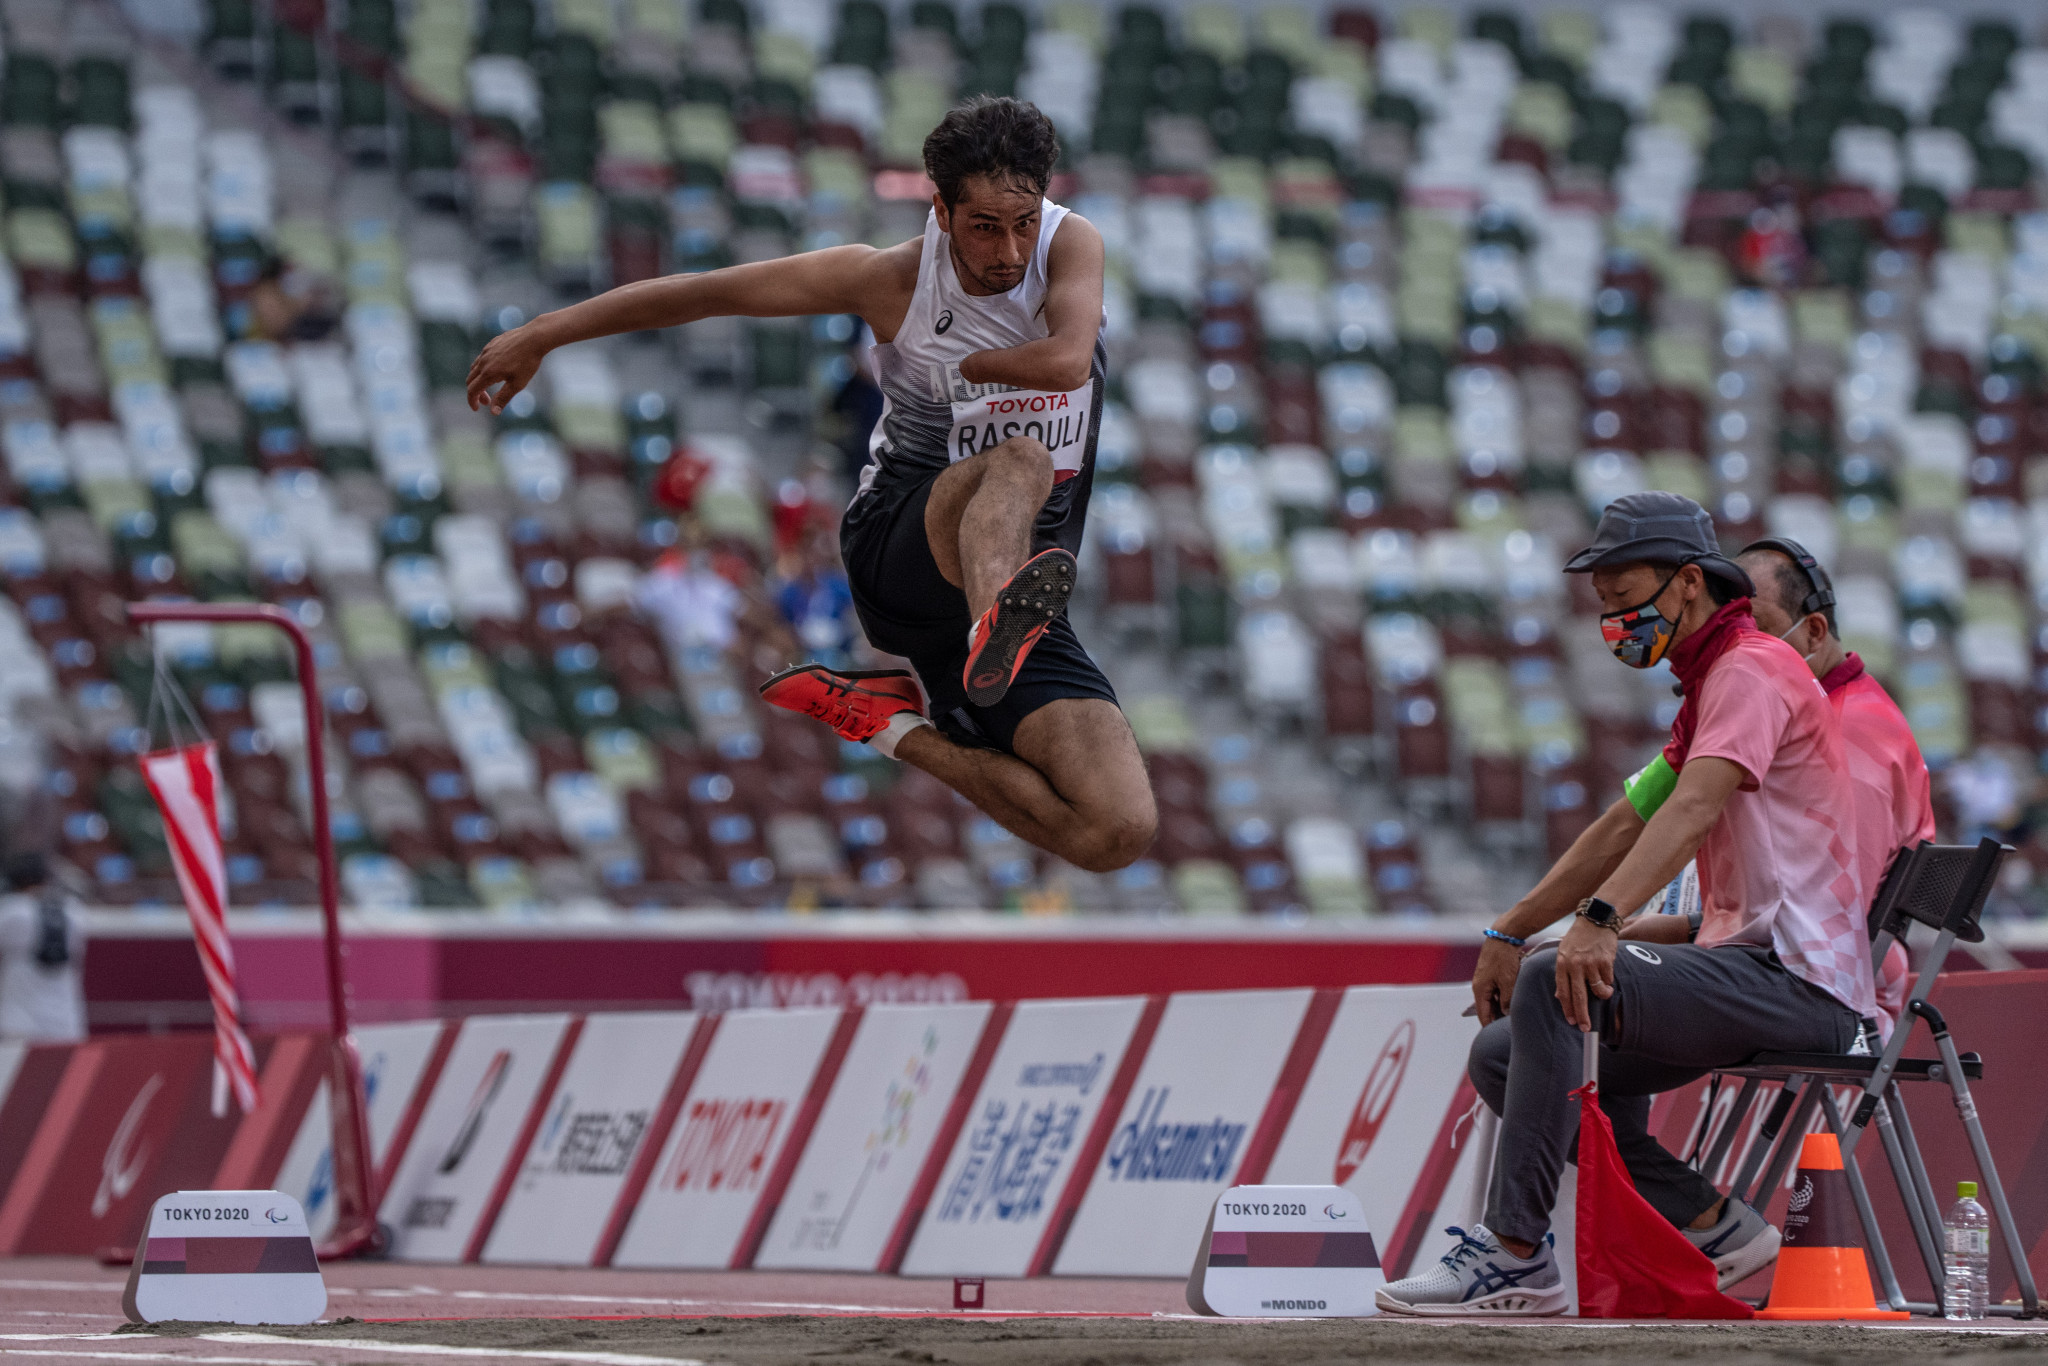 Hossain Rasouli participated in the men's long jump T47 at the Olympic Stadium ©Getty Images